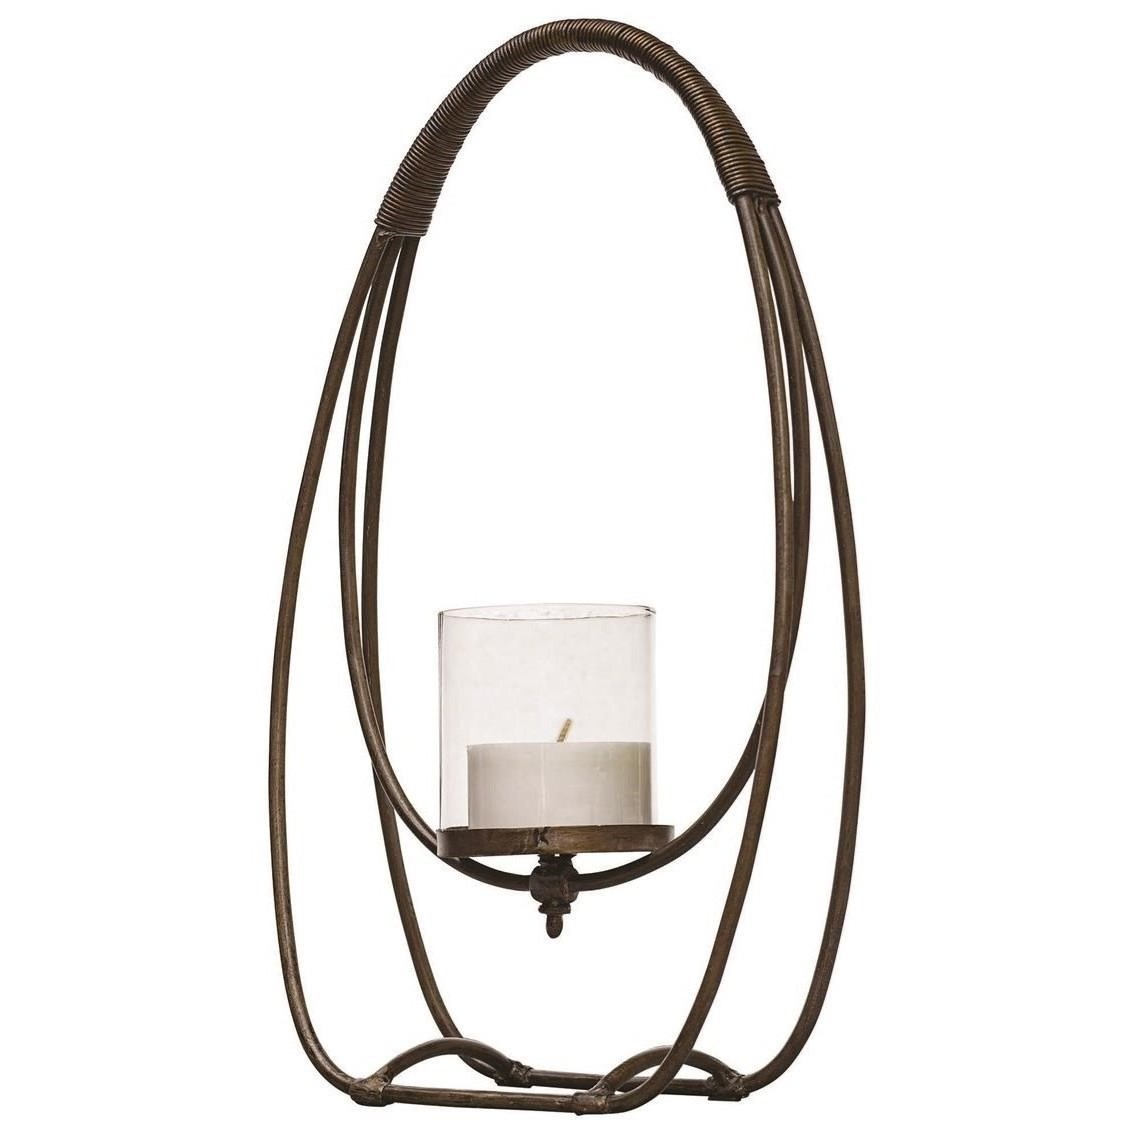 Accessories - Candle Holders Rayne Open Iron Candleholder by Uttermost at Miller Waldrop Furniture and Decor